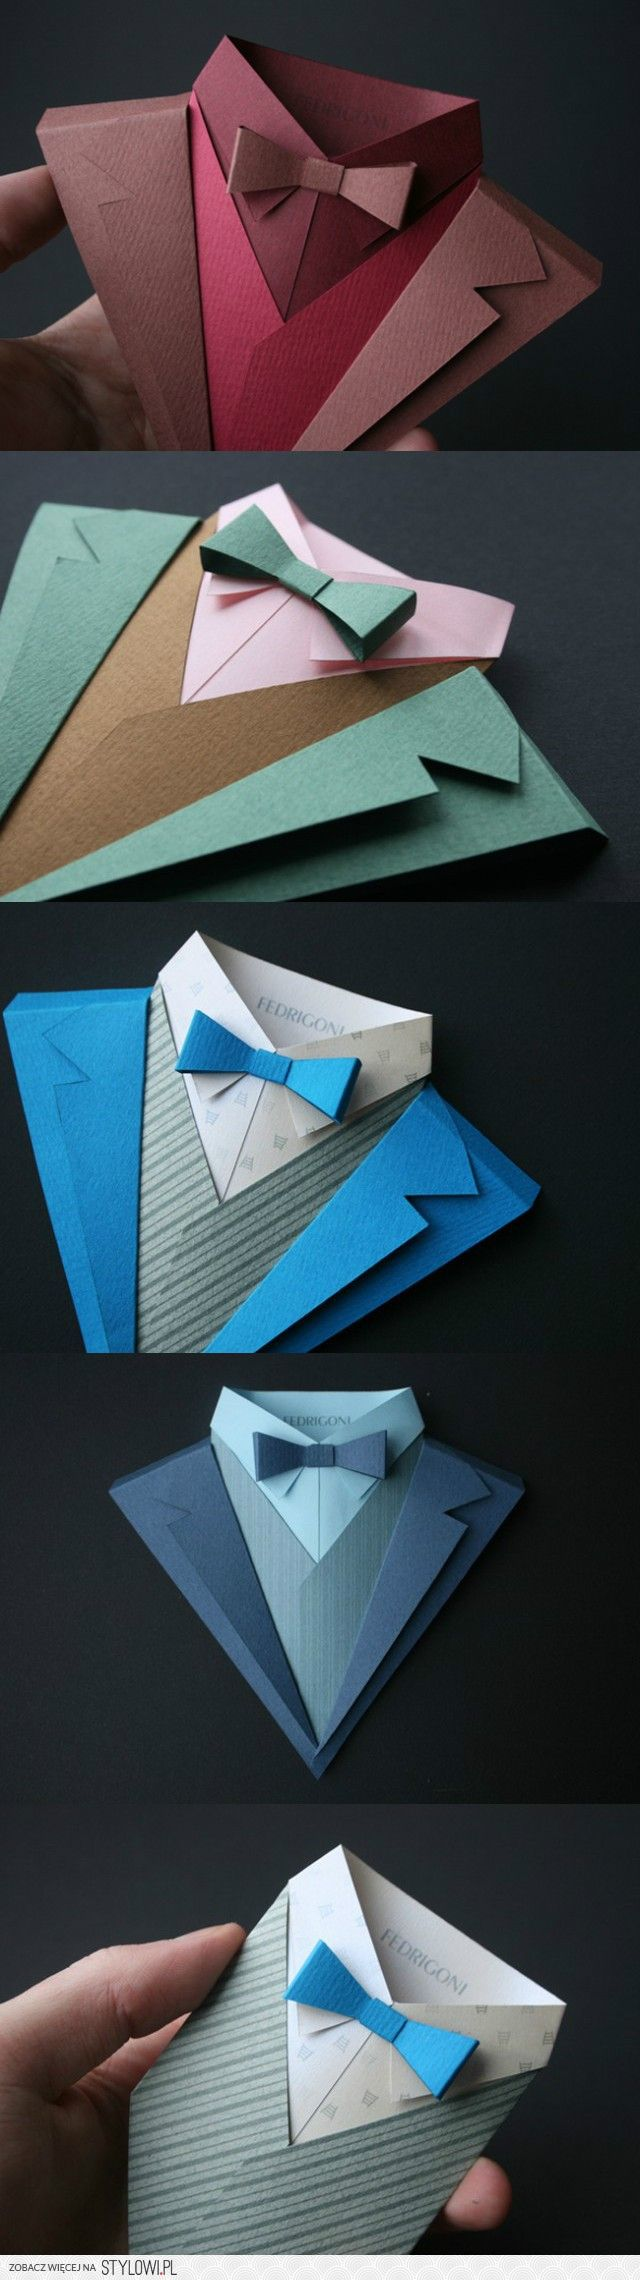 95 best ideas images on pinterest wrapping gifts birthdays and awesome idea for a gentlemans card for any occasion perhaps for fathers day birthday wedding card bookmarktalkfo Gallery